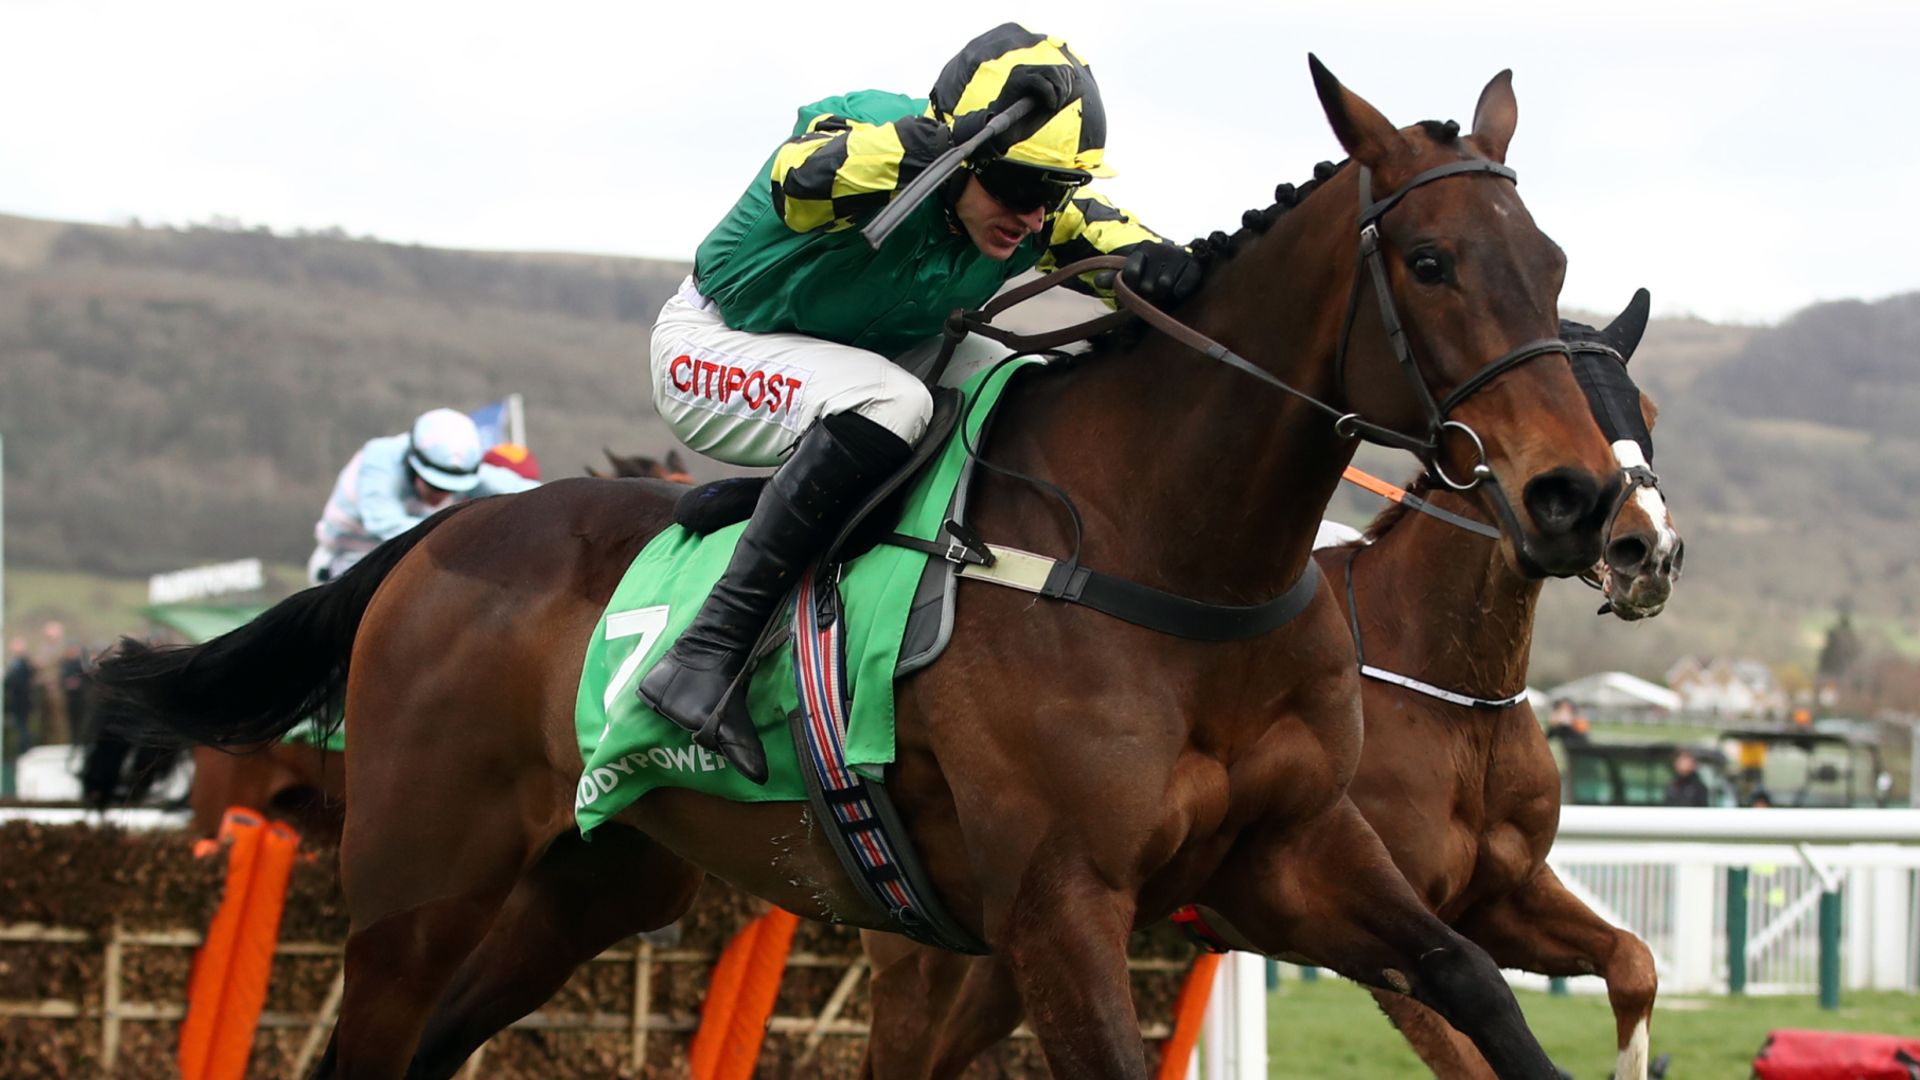 Wetherby return for Oscar - sky sports